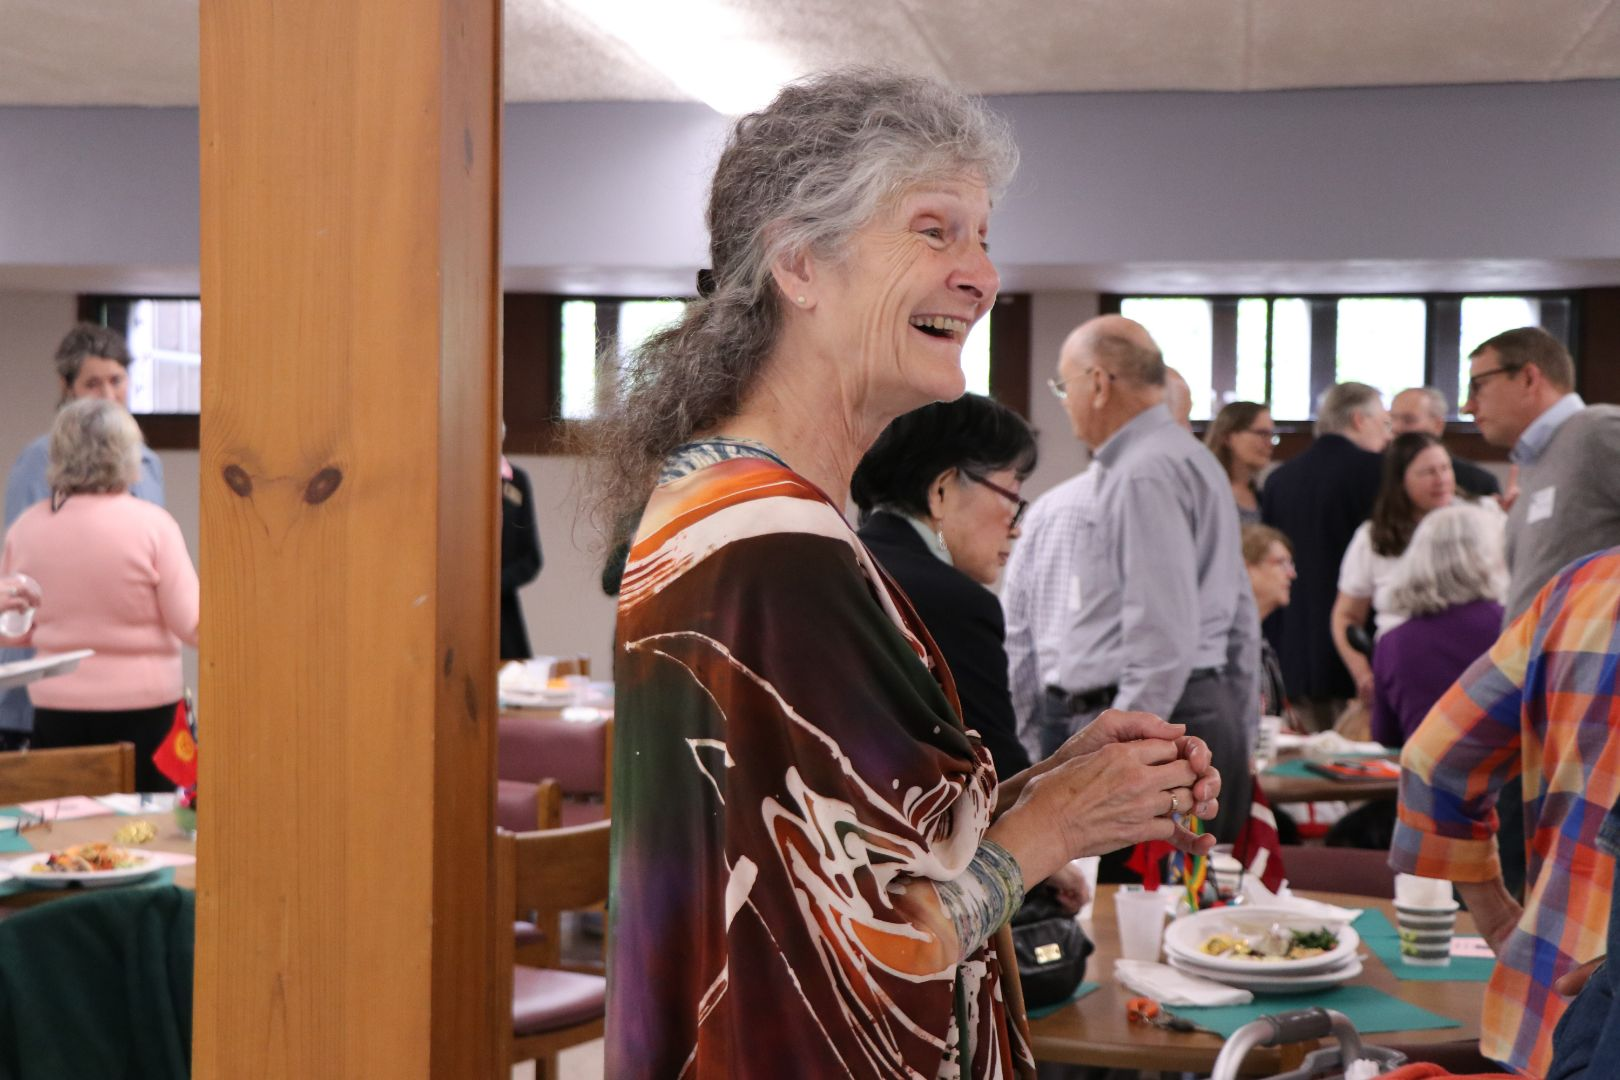 Marge Weldon CVIP, board member at CVIP luncheon. She is standing and smiling.